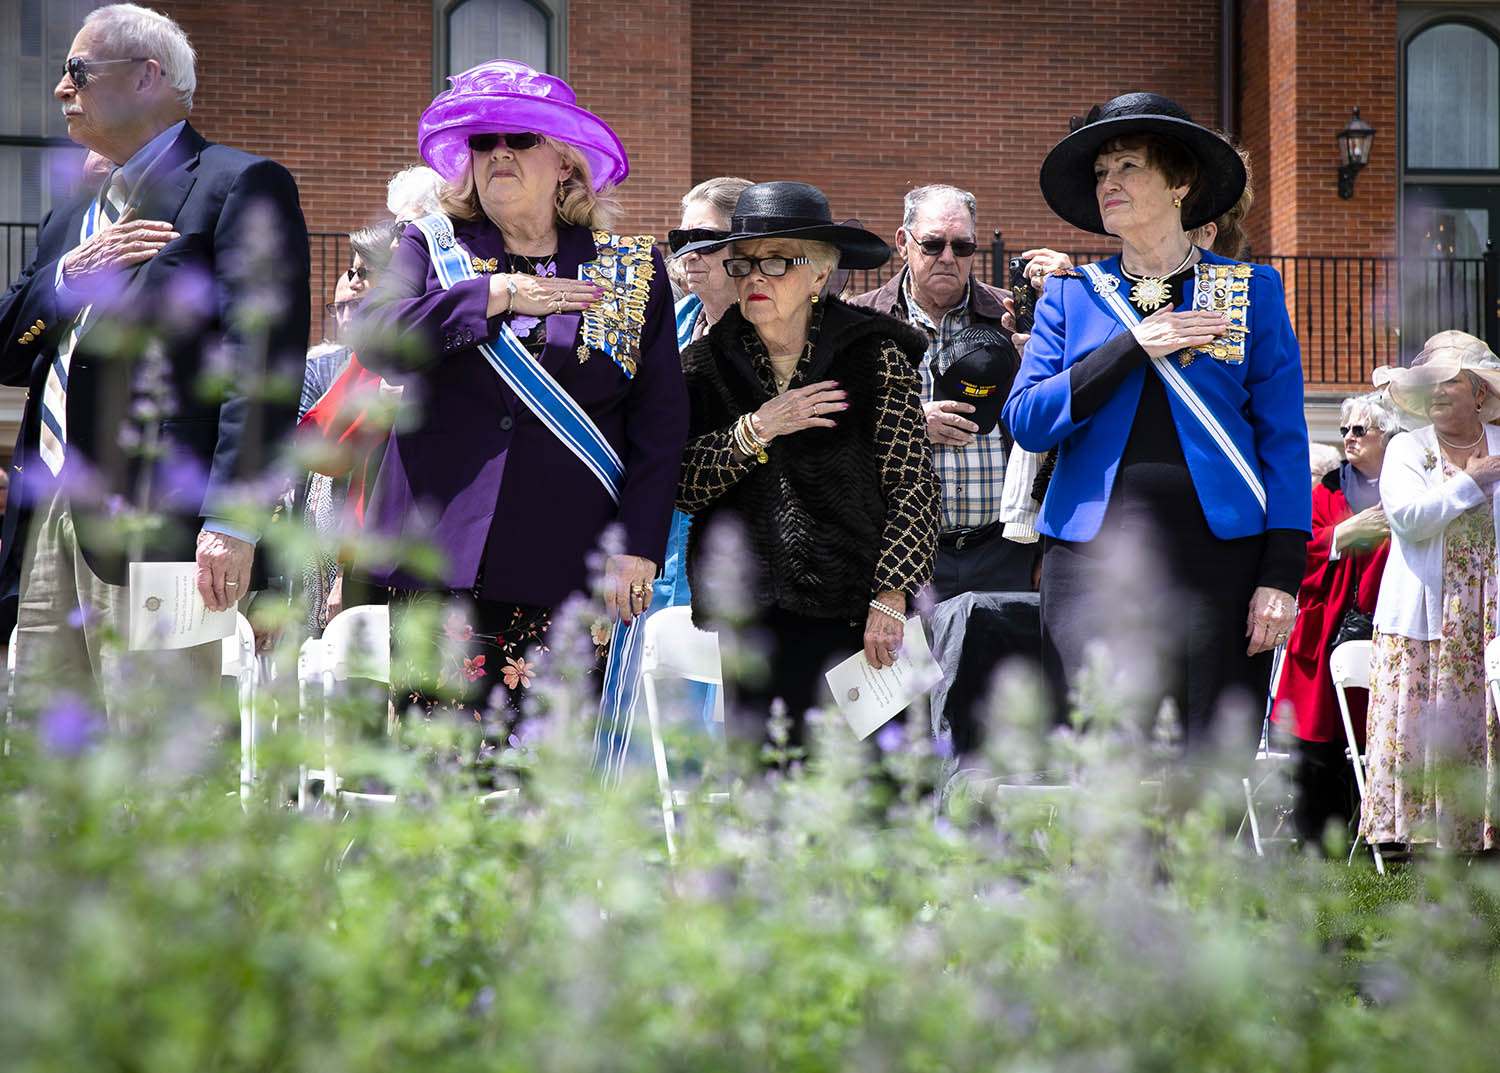 Luanne Bruckner, left, a past Vice President of the Illinois Daughters of the American Revolution, Gale Fixmer, center, a past vice president of the IDAR, and Pamela Bork, right, an honorary state regent for IDAR, hold their hands over their heart during the Presentation of Colors by the Chatham American Legion Post #759 during the dedication ceremony for the rose garden that was a gift from the IDAR and was funded for the Illinois Bicentennial at the Illinois Governor's Mansion, Friday, May 10, 2019, in Springfield, Ill. [Justin L. Fowler/The State Journal-Register]